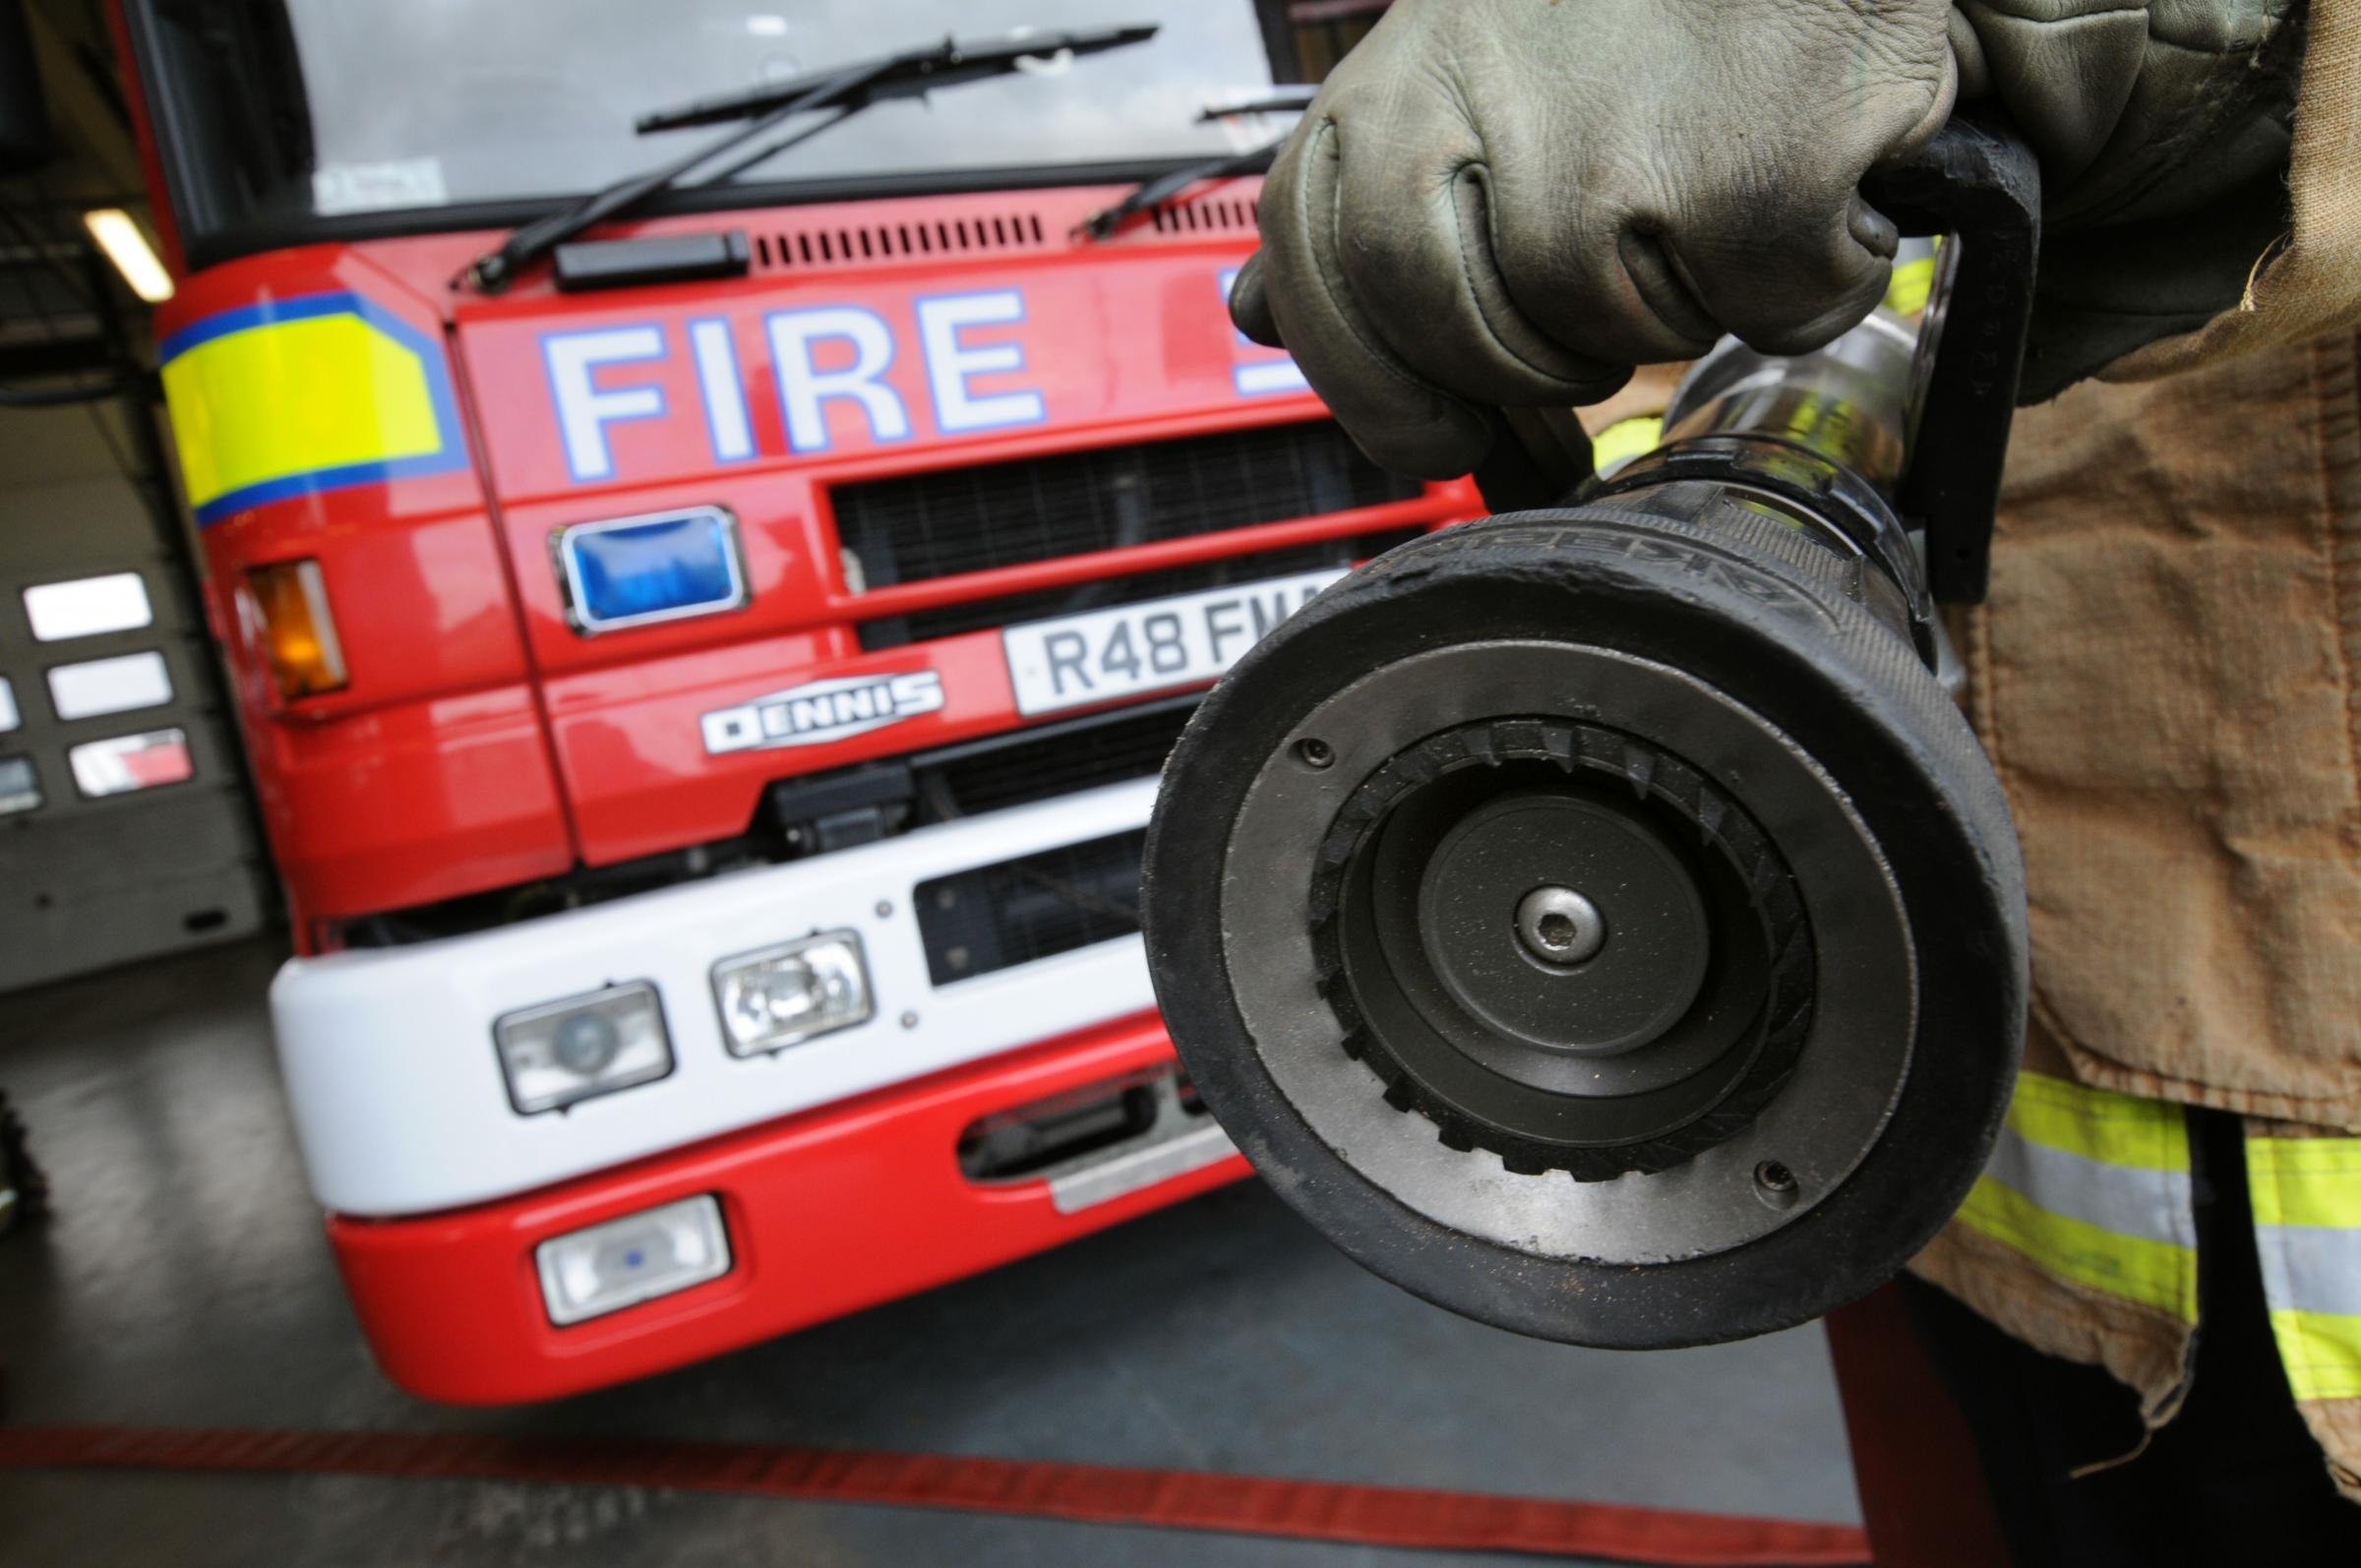 Firefighters tackle motorbike fire on Hale Gate Road in Widnes